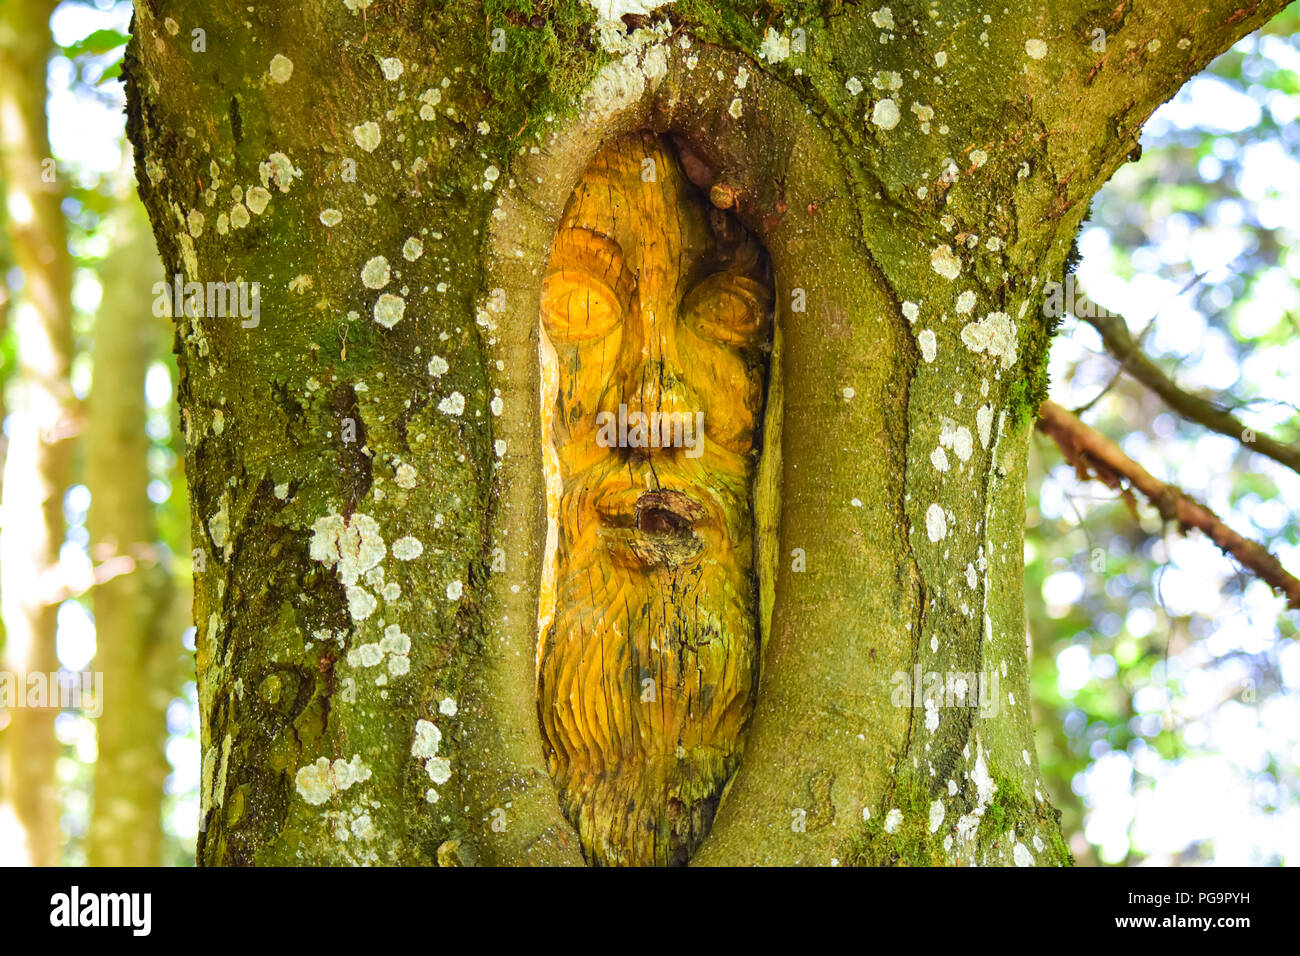 Old man face in a tree - Stock Image